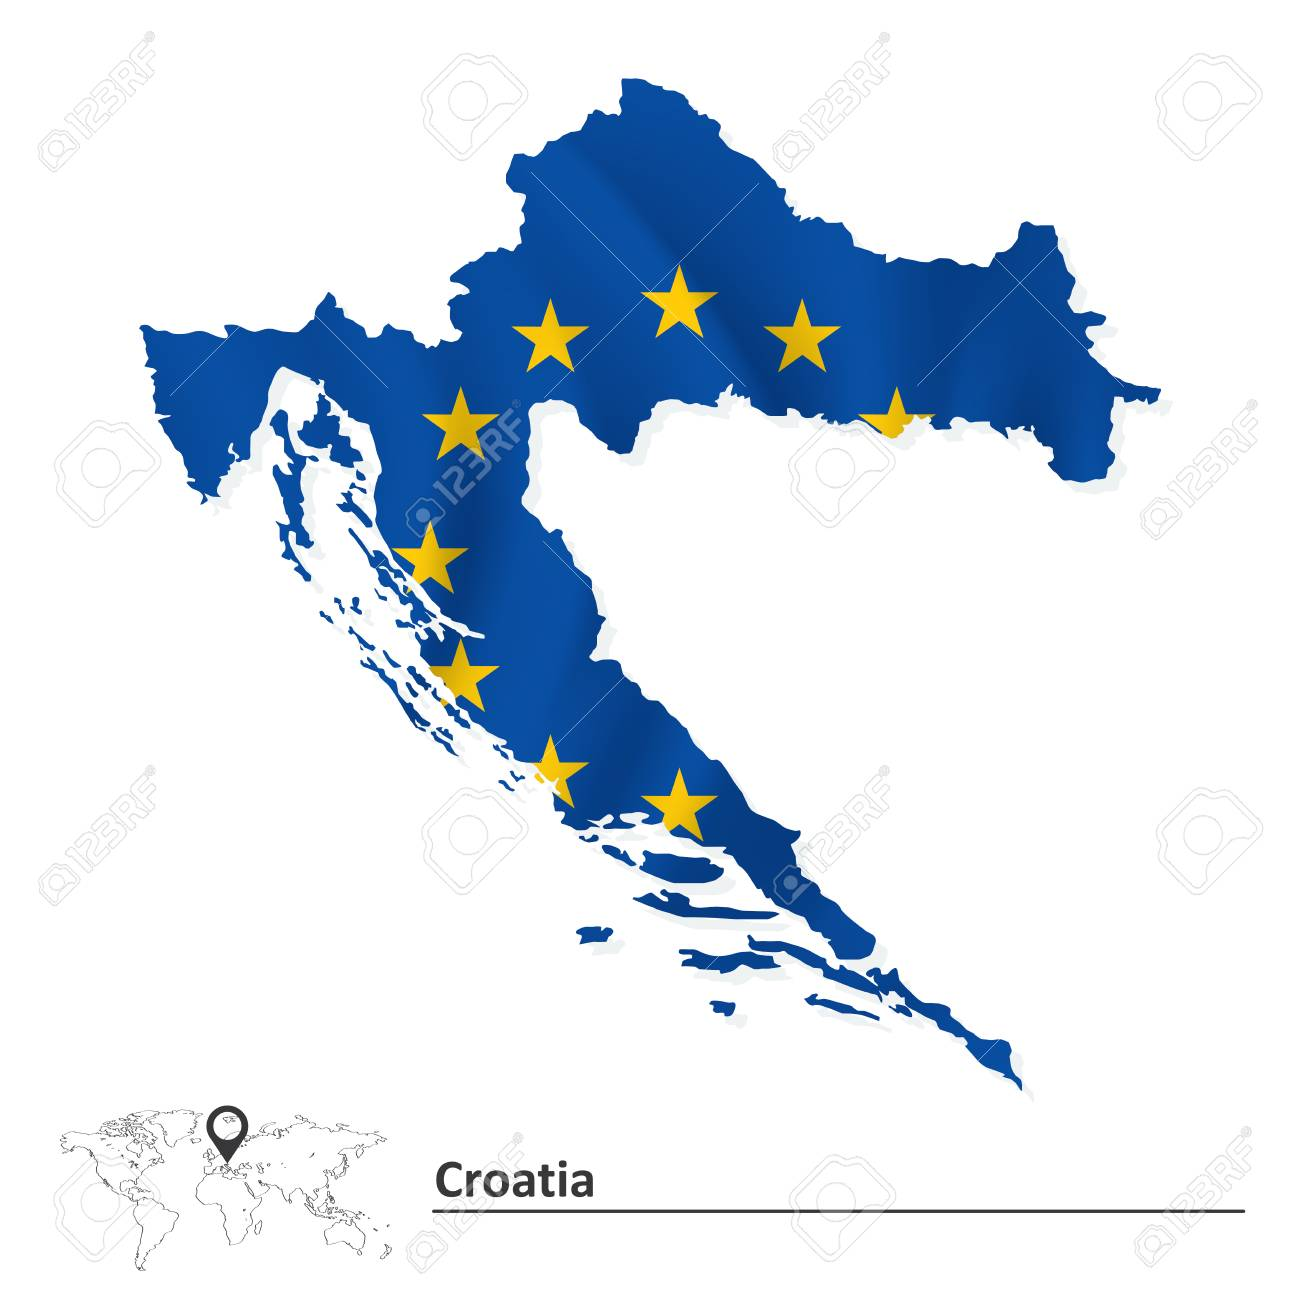 Map Of Croatia With European Union Flag Illustration Royalty Free